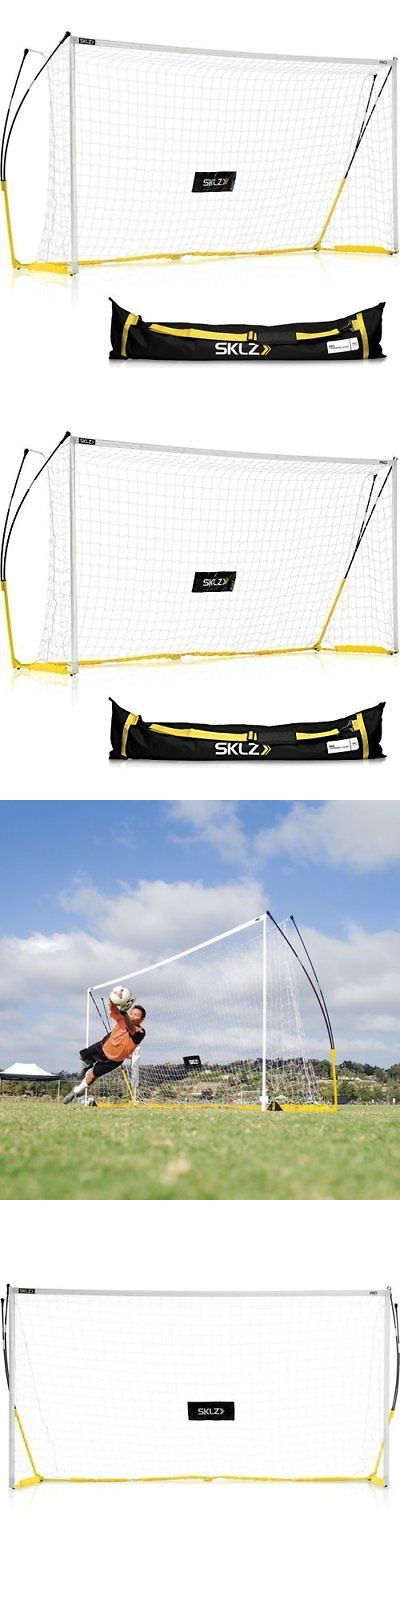 Goals and Nets 159180: New Sklz Pro Soccer Training Goal - Size:12 X6 -> BUY IT NOW ONLY: $203.89 on eBay!